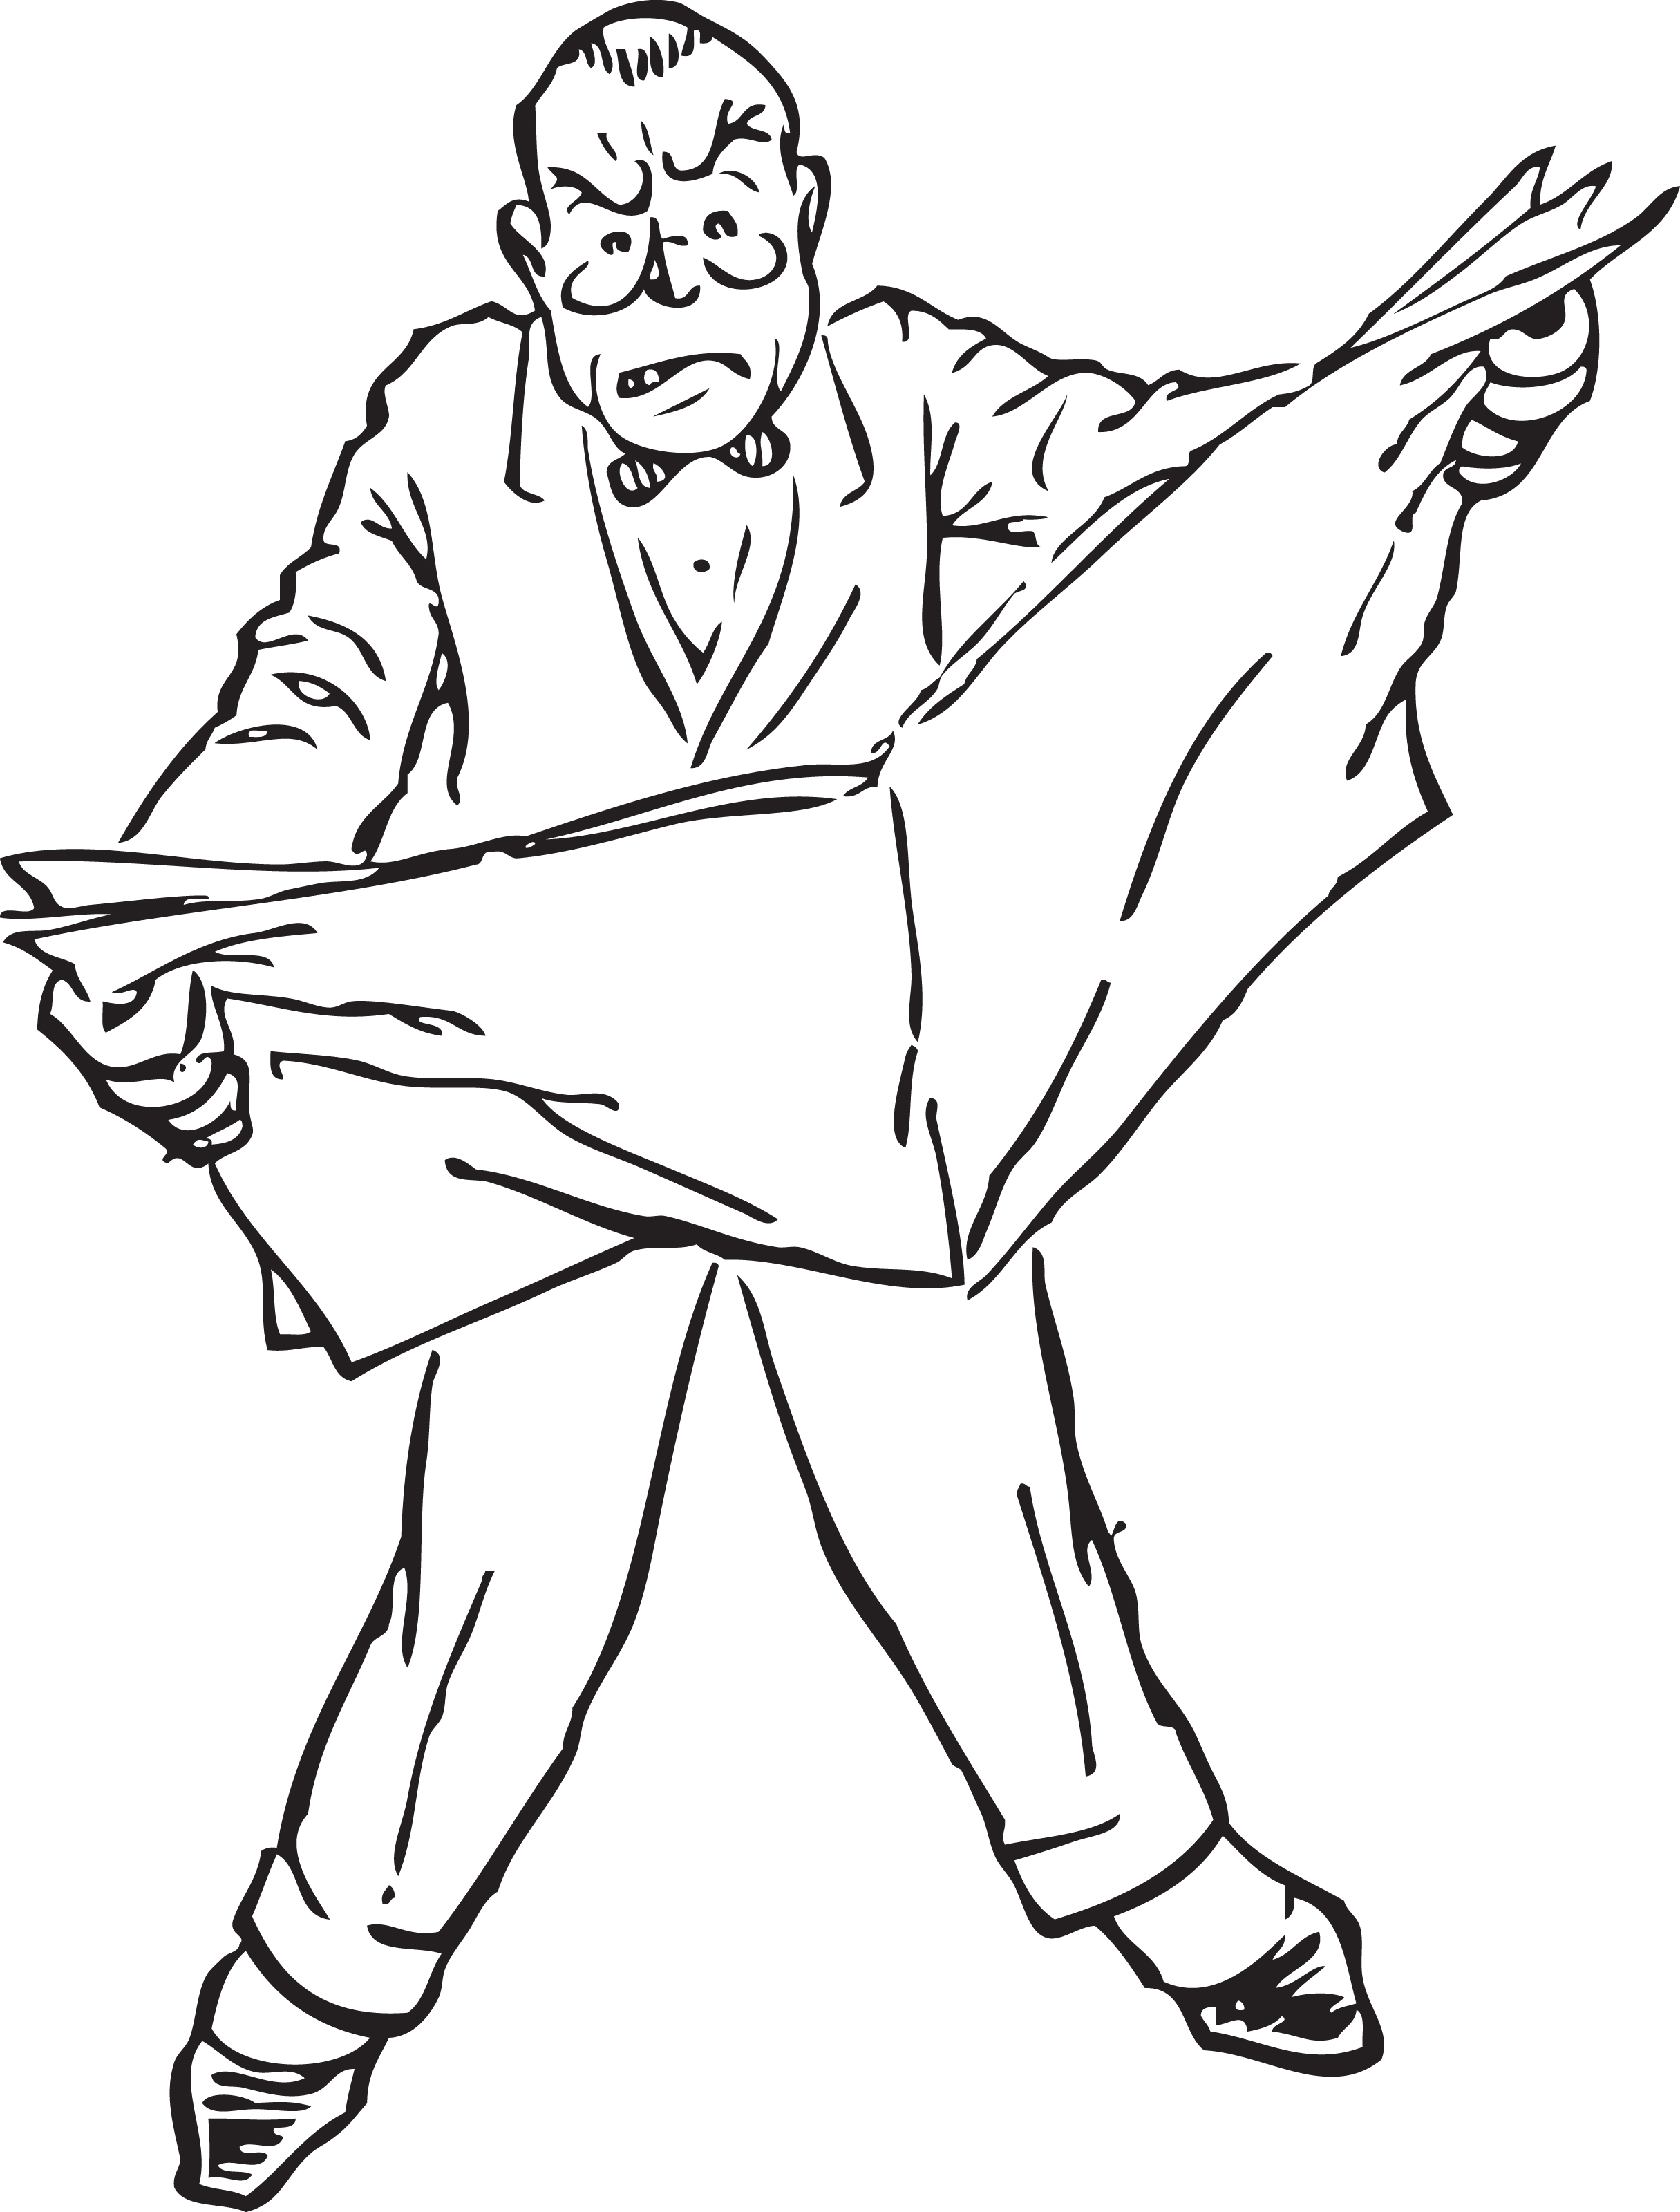 Old Man Reading News Paper Clipart 20 Free Cliparts